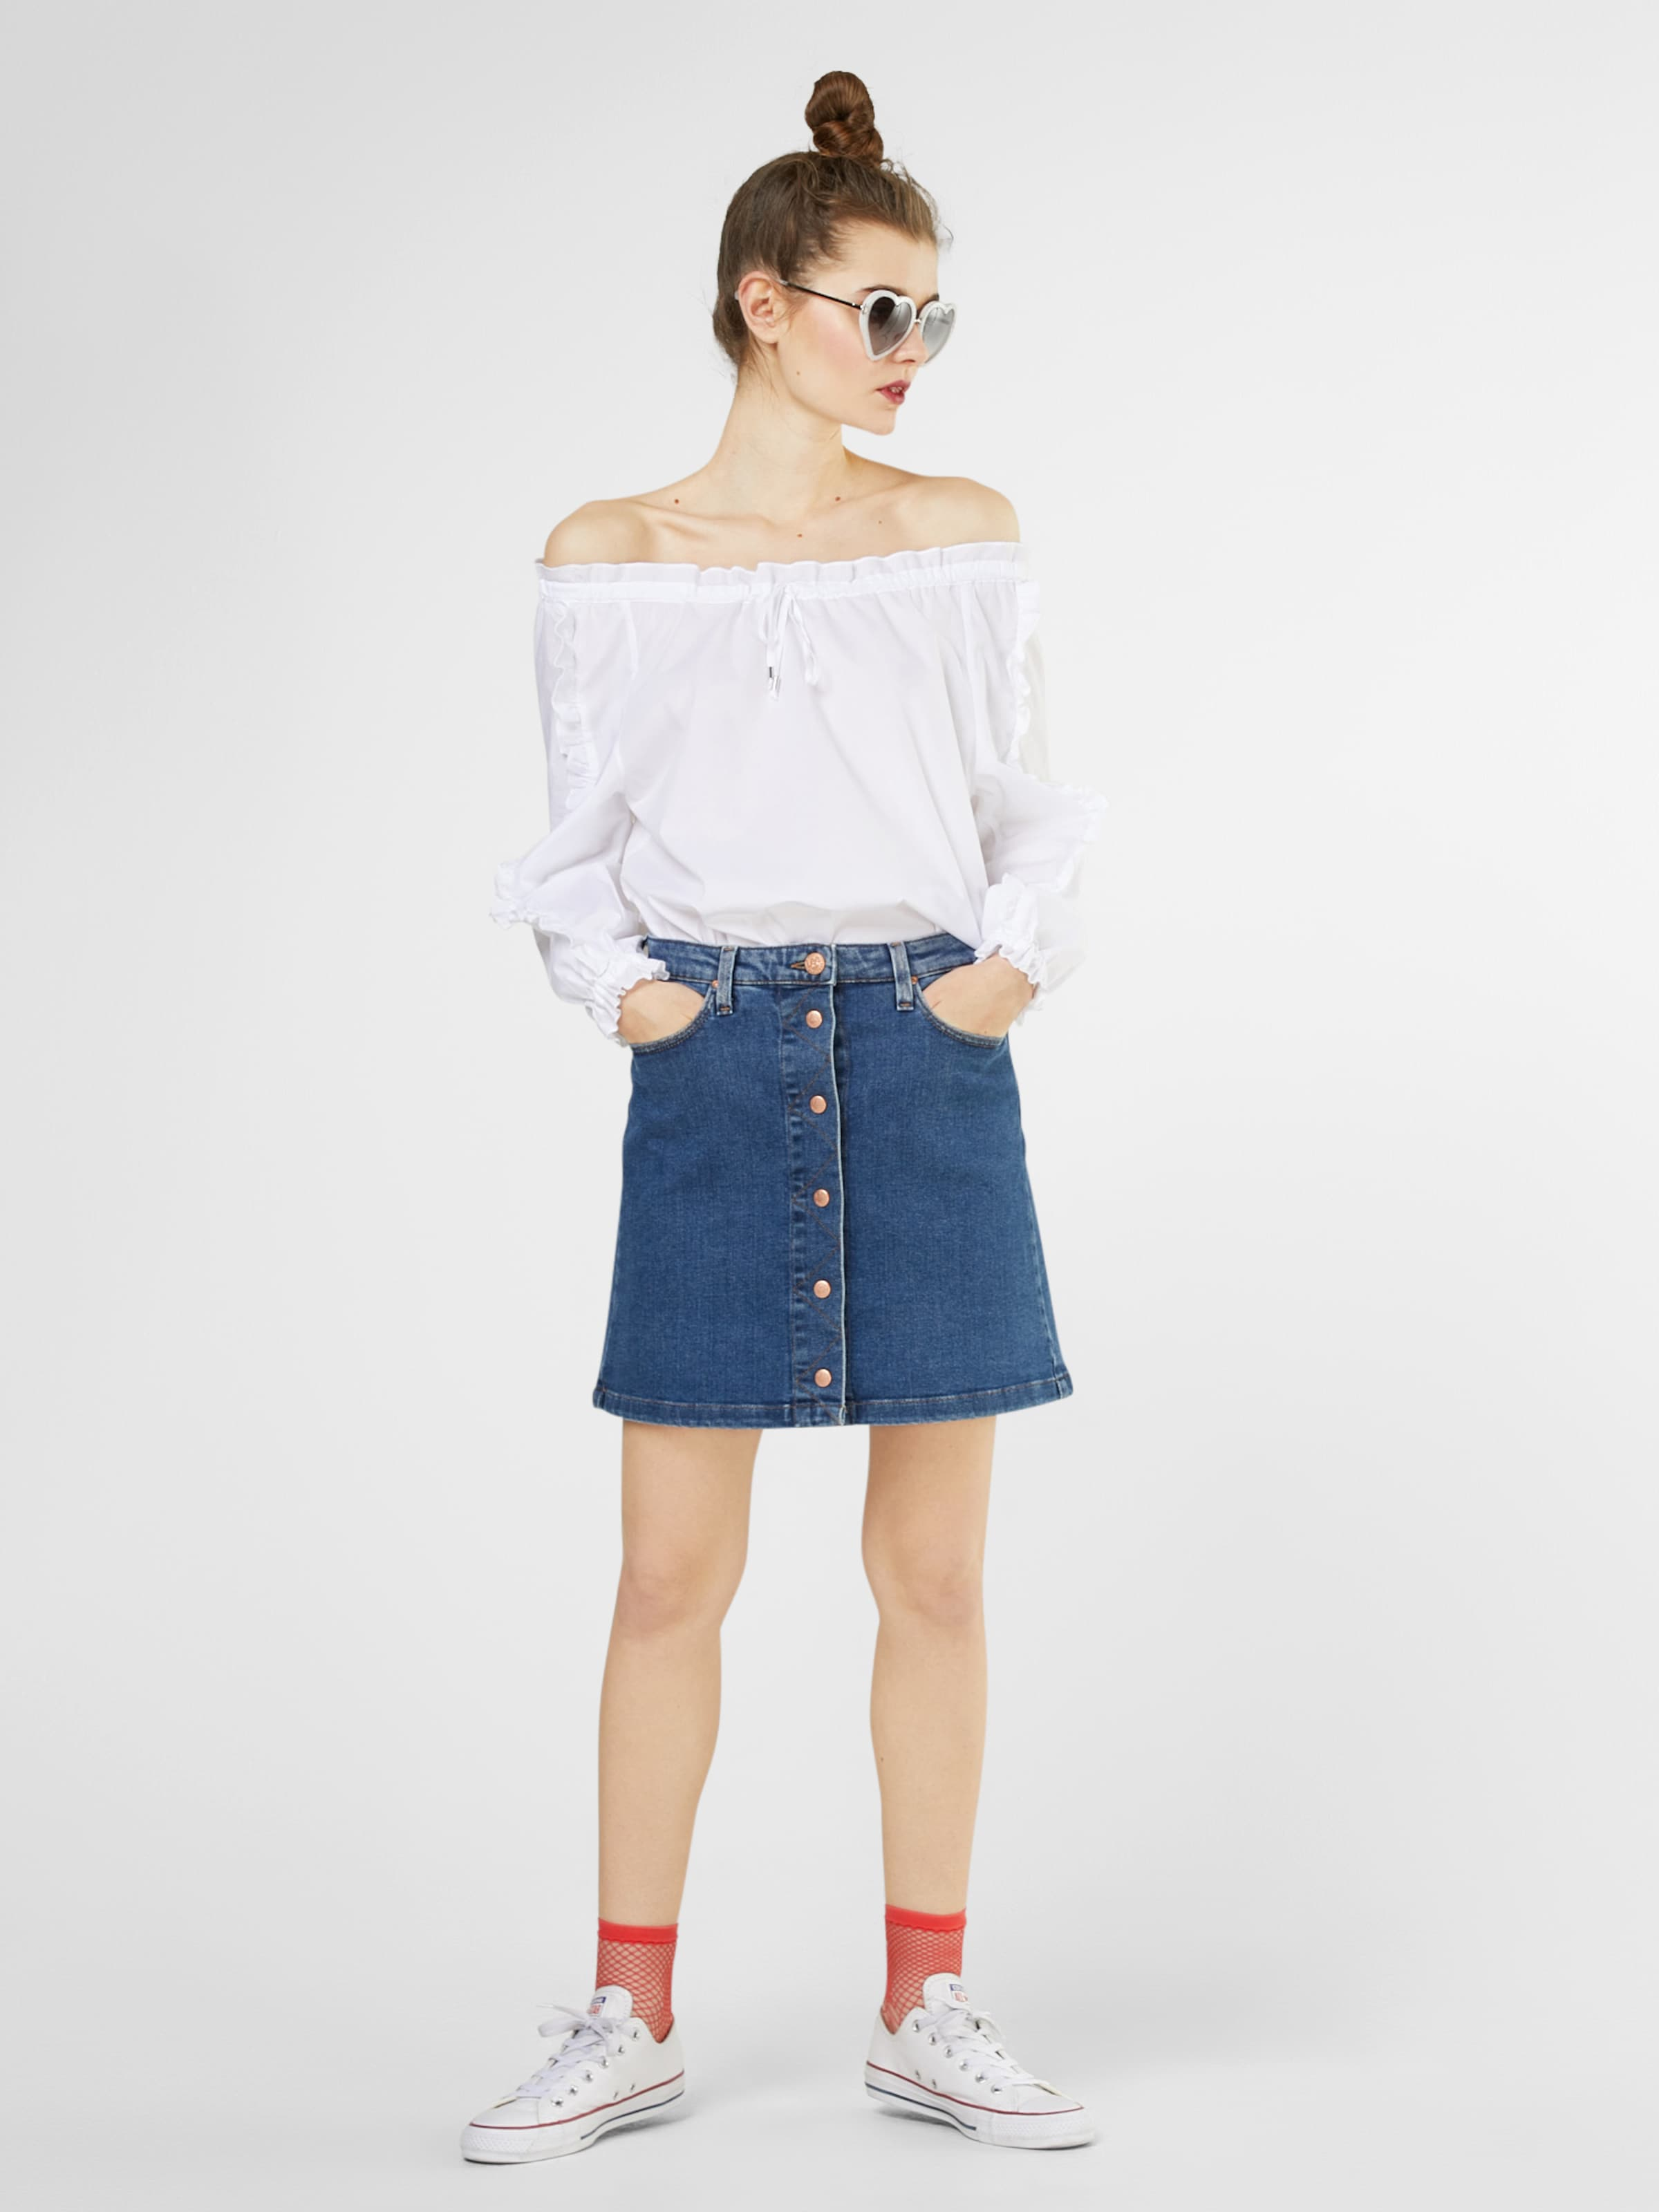 shoulder 'turin' amp;jerfs In bluse Risy Weiß Off DI2YE9WH